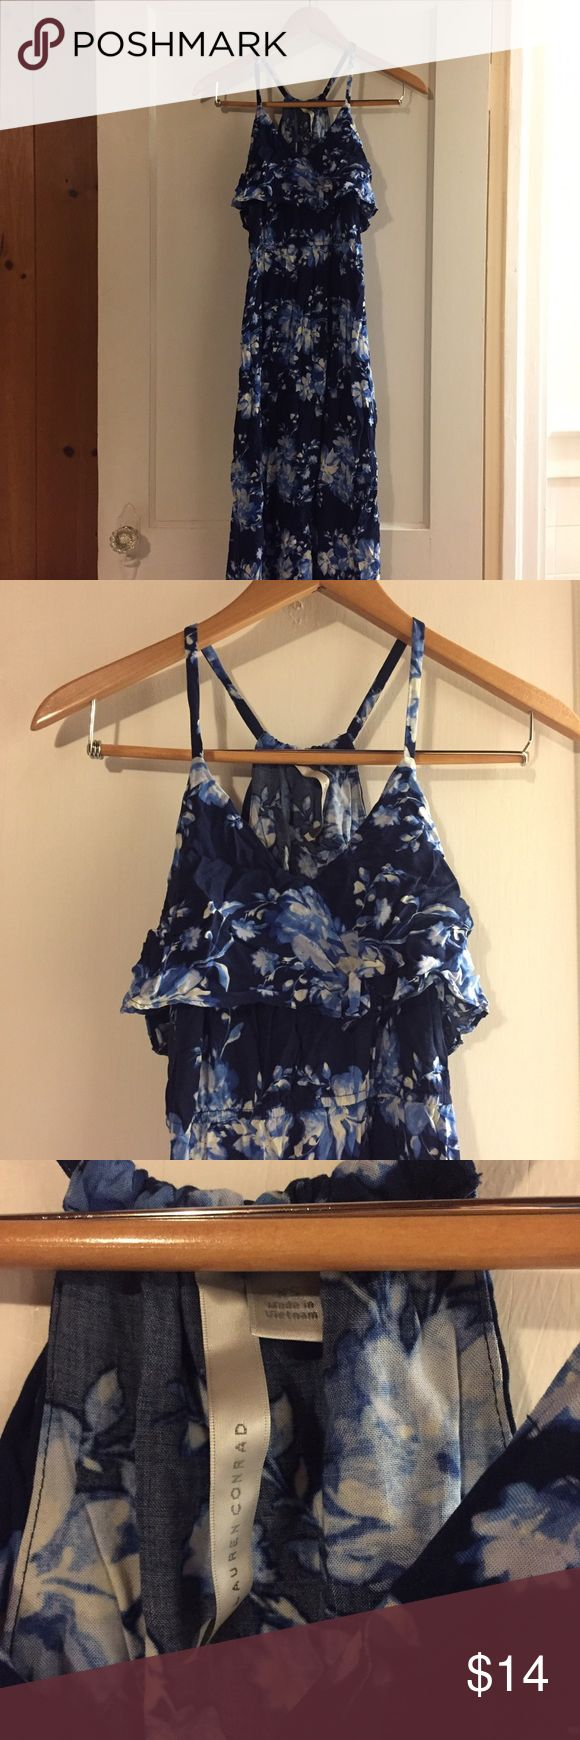 Lauren Conrad floral maxi dress Adorable LC Lauren Conrad floral maxi dress. Size xsmall. Great condition, just wrinkled from storage. LC Lauren Conrad Dresses Maxi